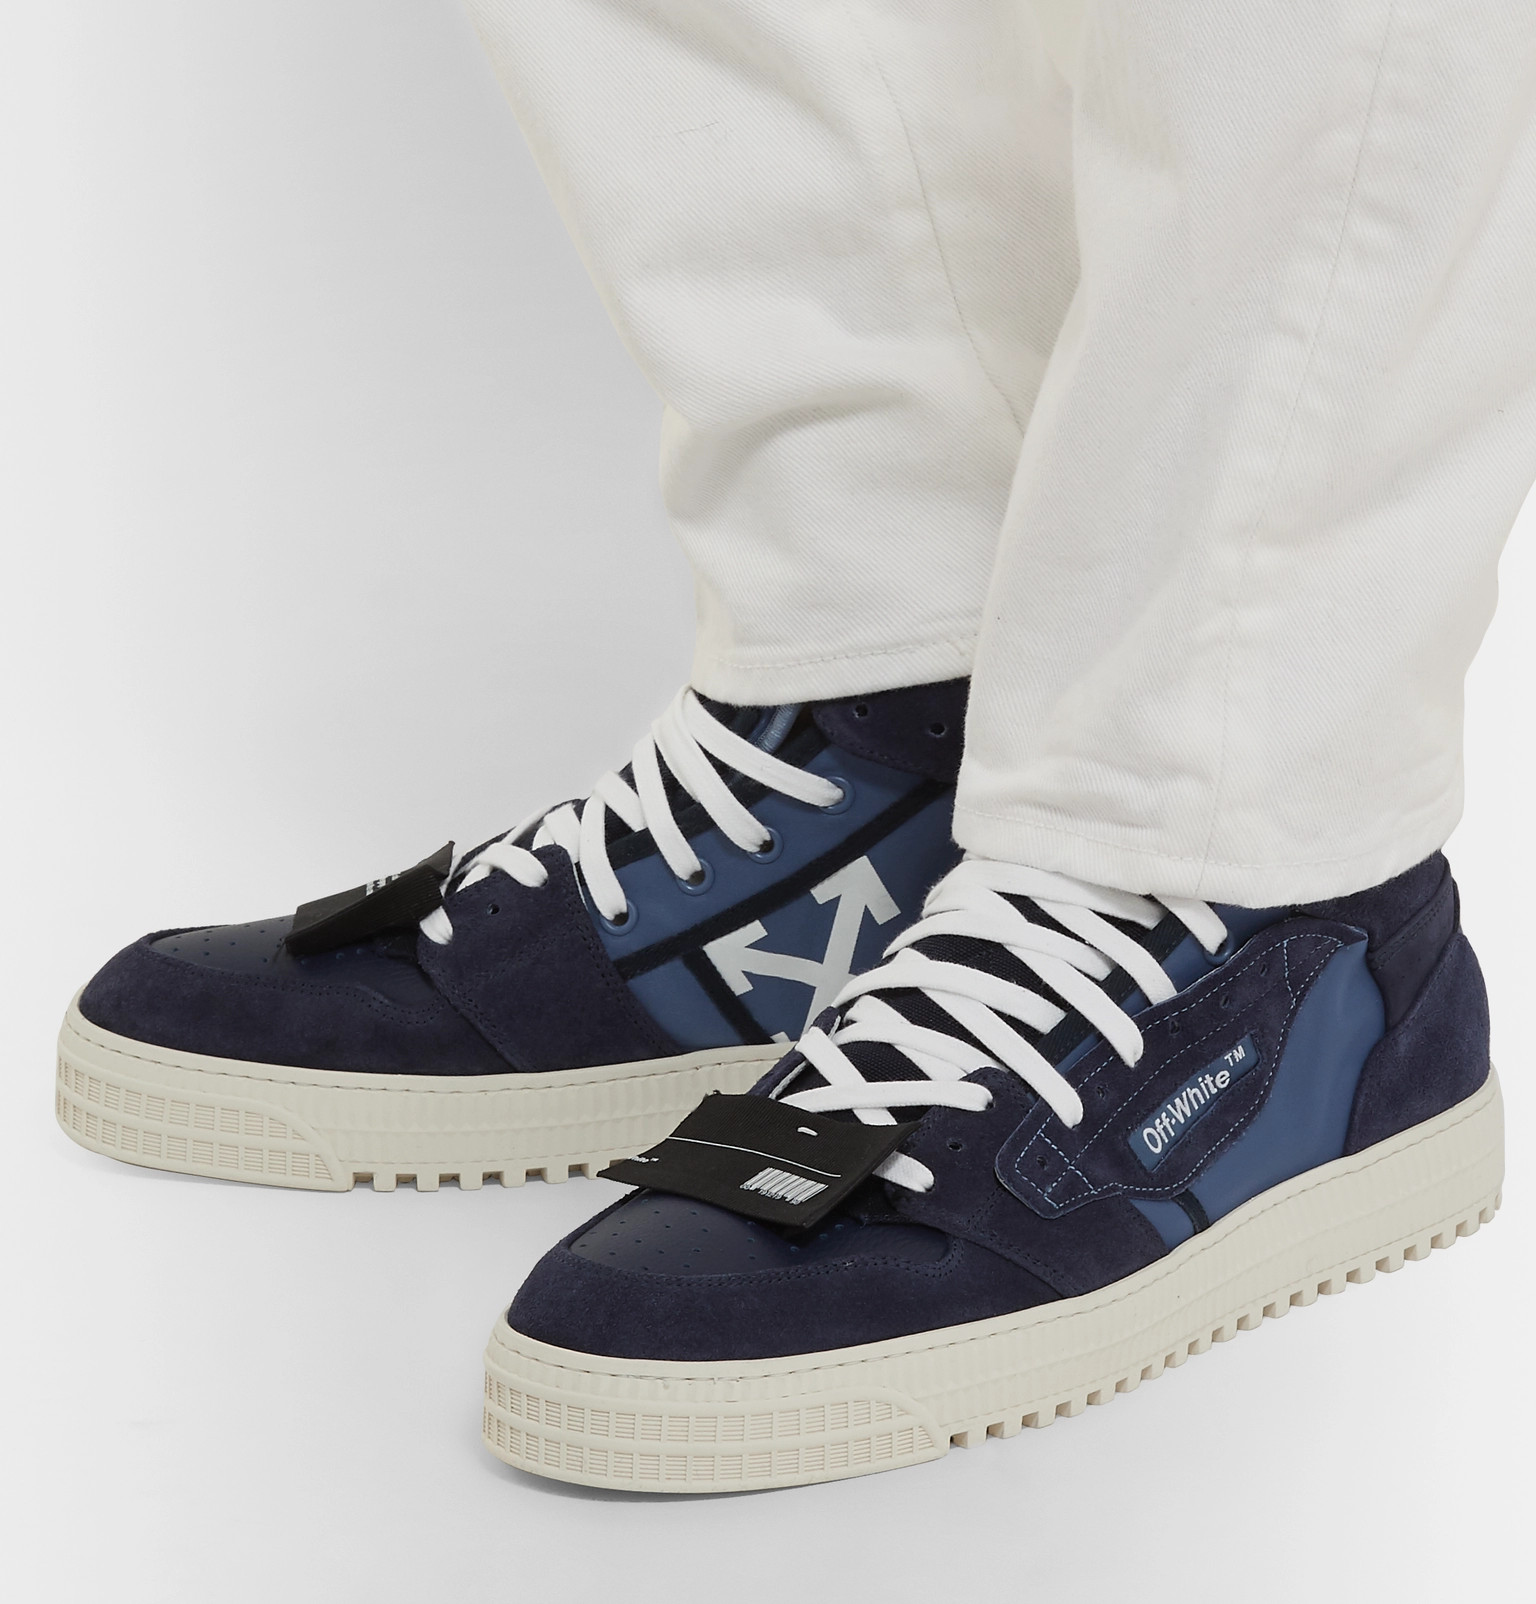 timeless design 52e64 c097c Off-White3.0 Off-Court Suede, Leather and Canvas High-Top Sneakers